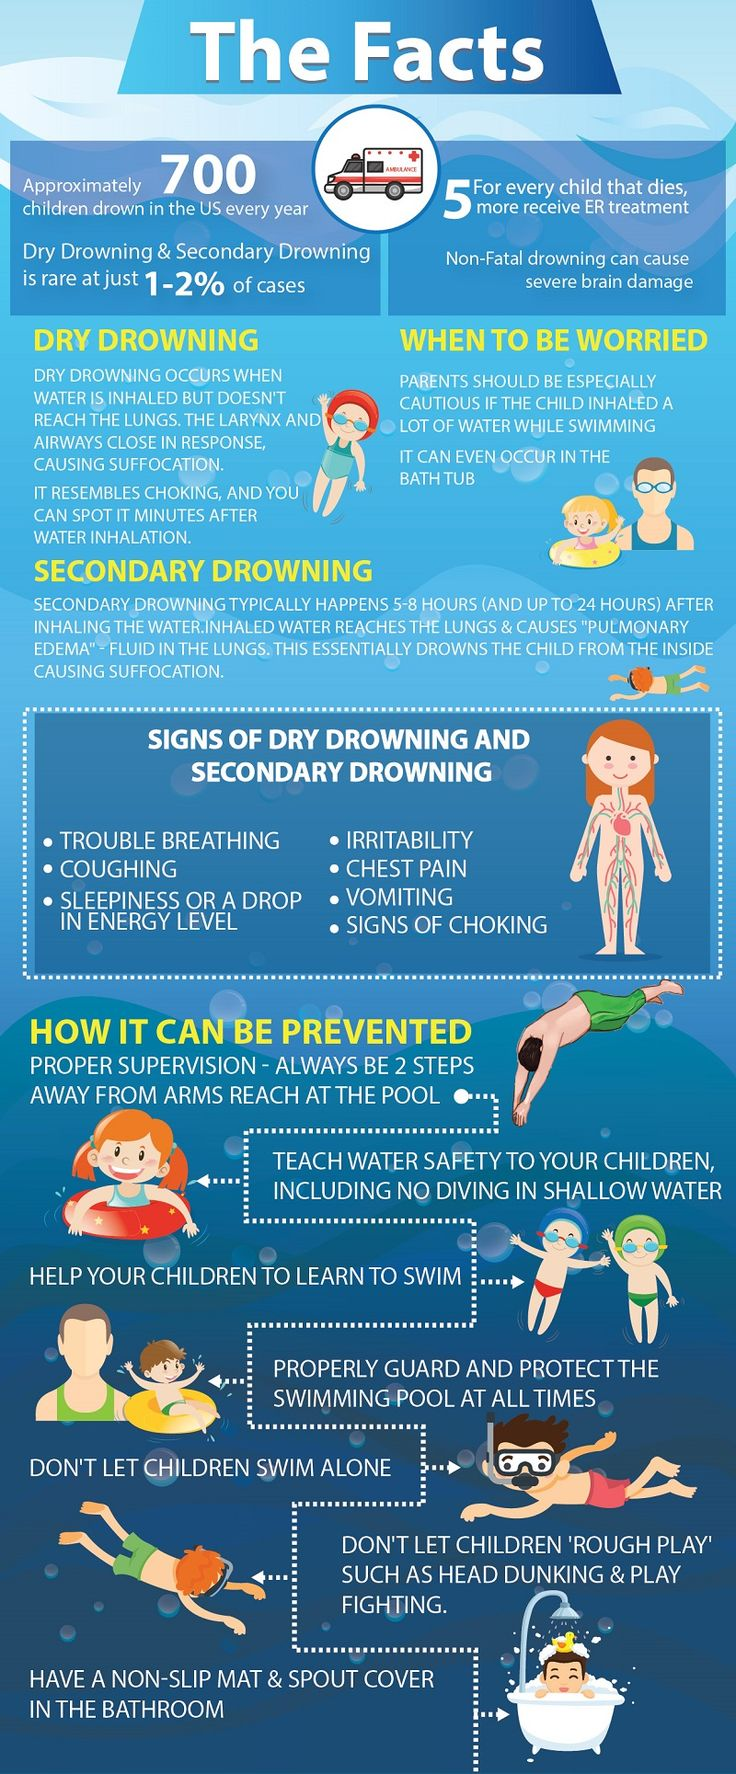 Our helpful Infographic gives parents the facts about Dry Drowning & Secondary Drowning, how to spot the symptoms, and what you can do to prevent it!